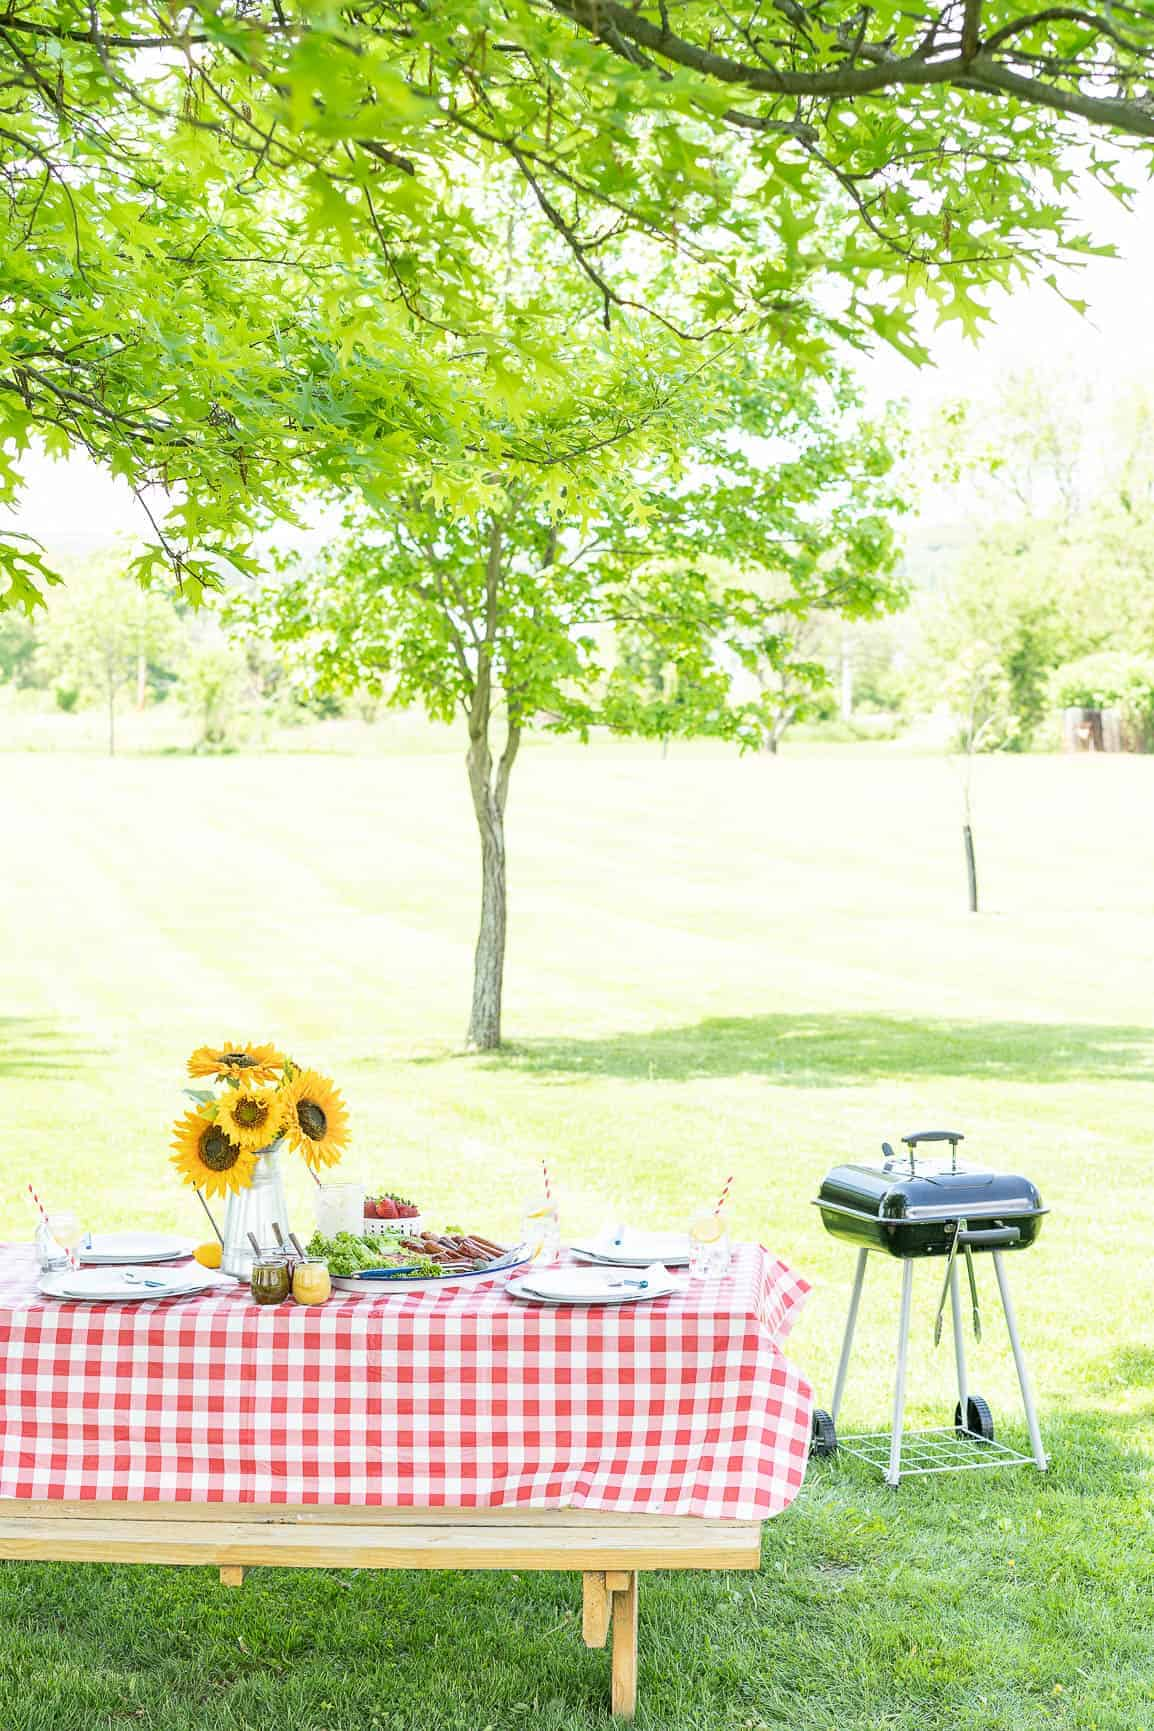 picnic table set in a field with a charcoal grill